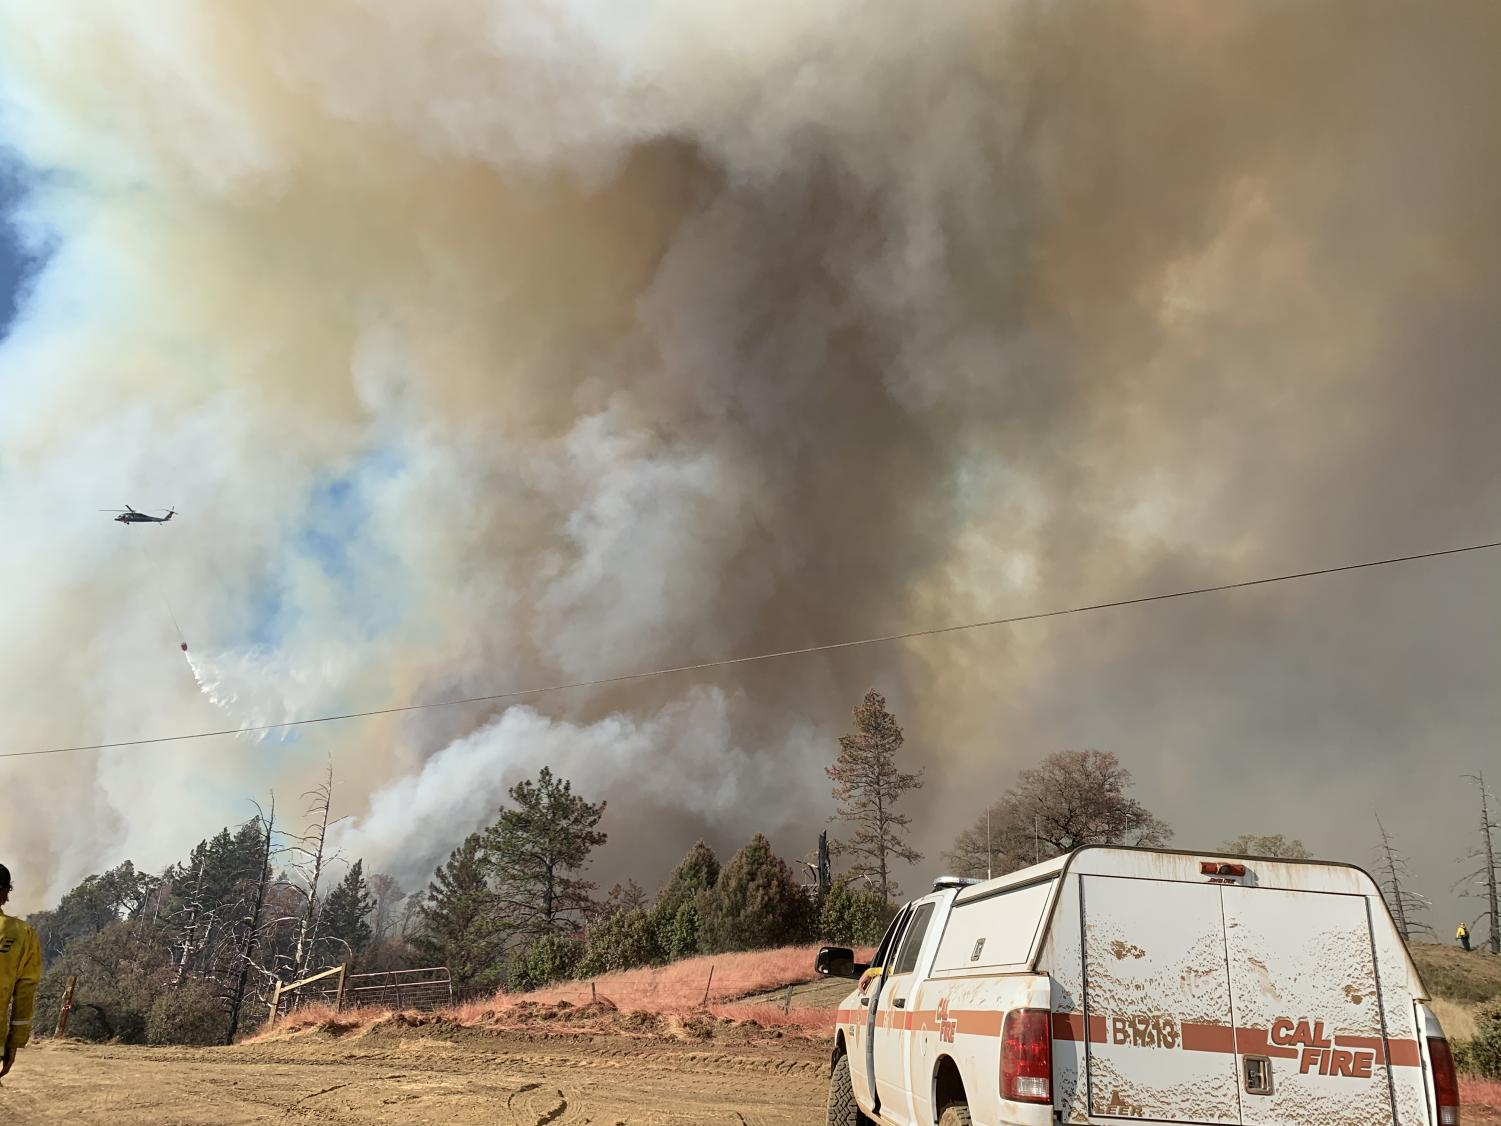 Cal Fire firefighter Xavier Chavez shoots pictures with his phone while helping fight the Kincade Fire in Sonoma county. The fire destroyed 374 structure and on Monday a federal judge ordered an investigation as to whether a transmission line malfunction reported by PG&E was the cause of the fire.